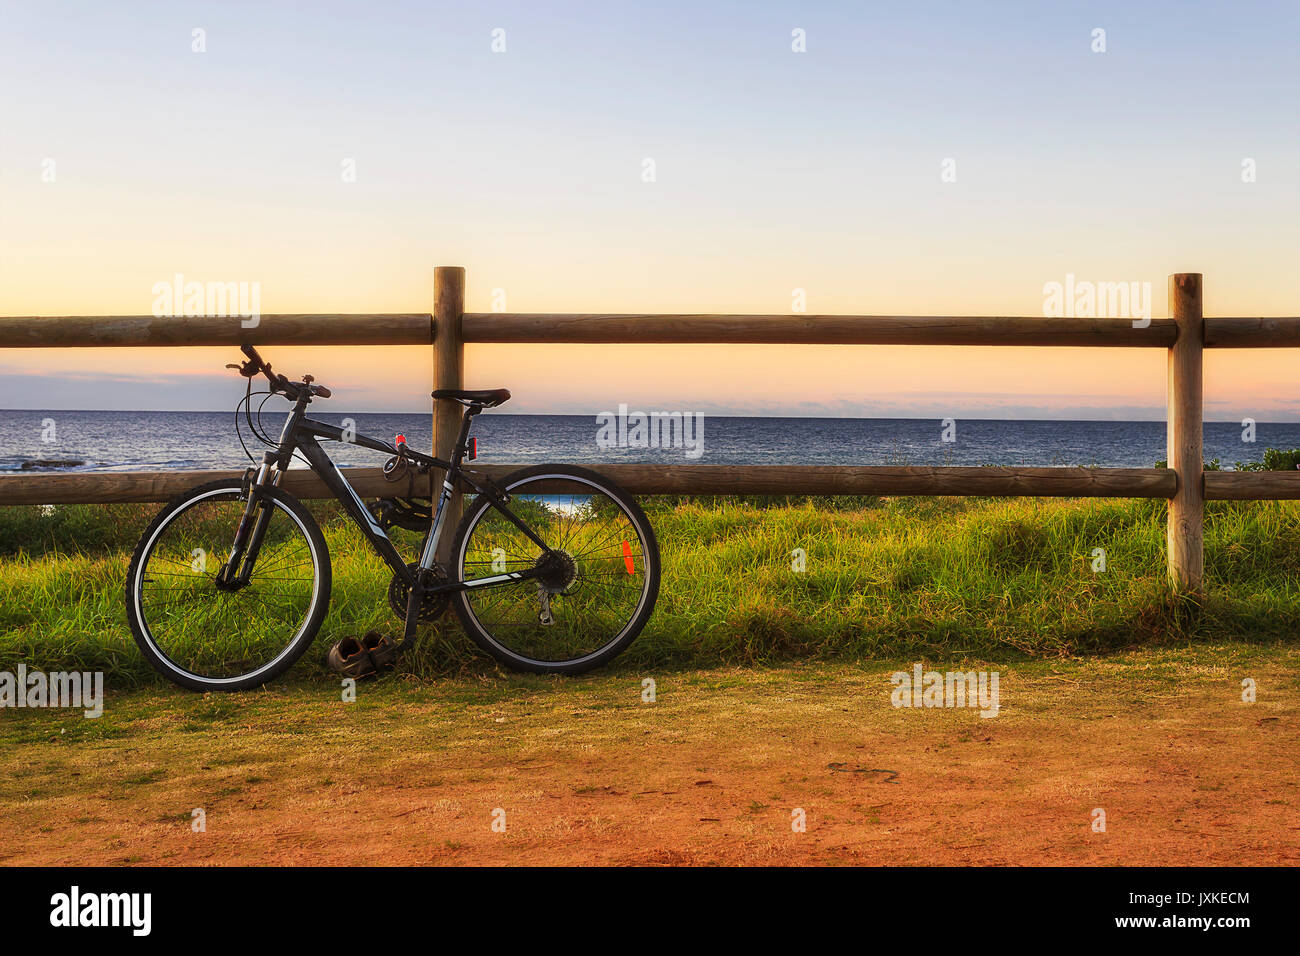 Black modern sport bicycle secured at the wooden pole of fence at the empty beach at sunrise. - Stock Image